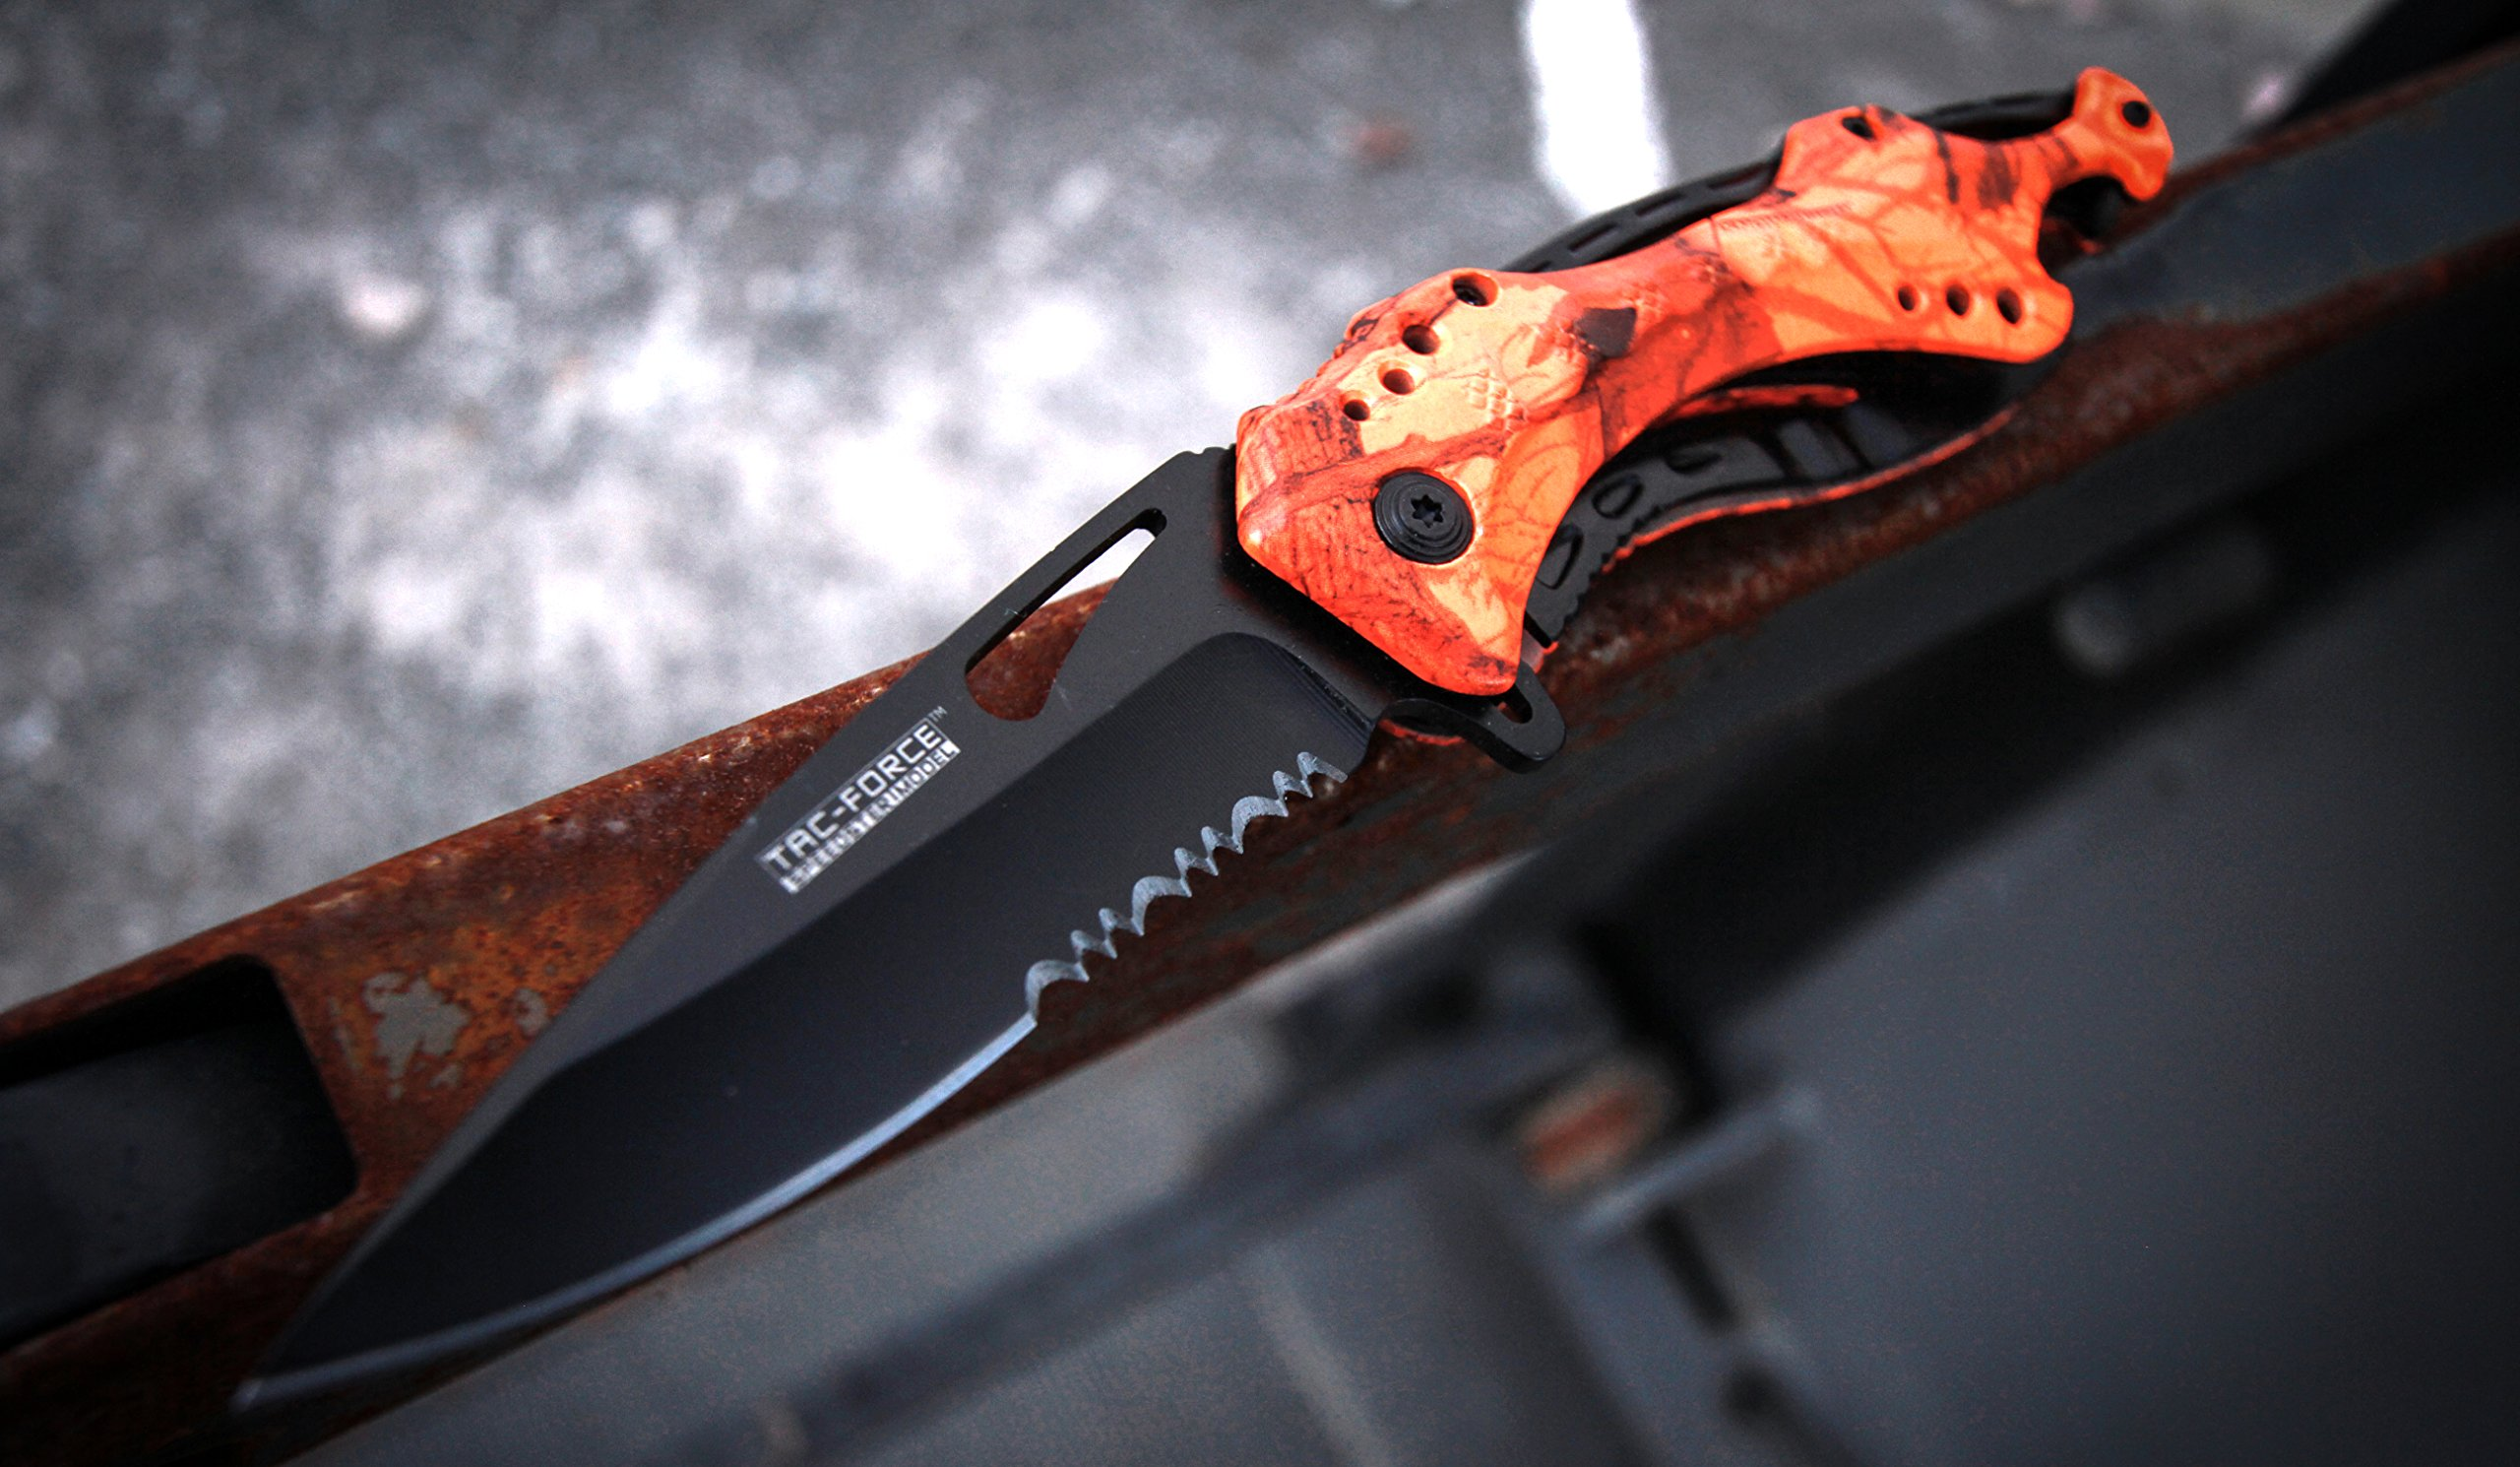 TAC Force TF-705RC-MC TF-705 Series Assisted Opening Tactical Folding Knife with 3-1/4'' Half-Serrated Blade, Red Camo